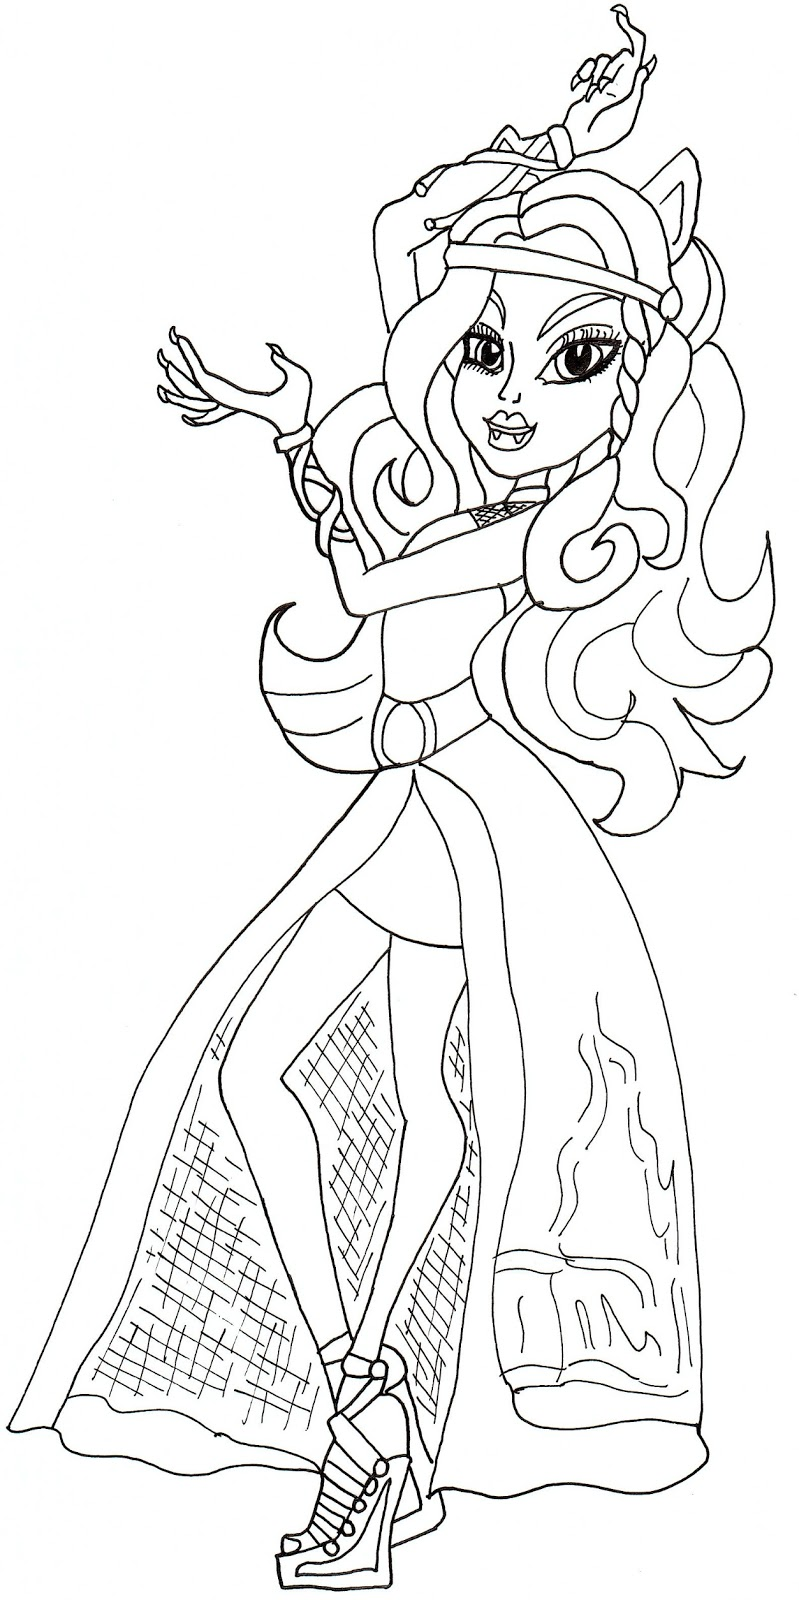 Free Printable Monster High Coloring Pages: Clawdeen Haunt the ...